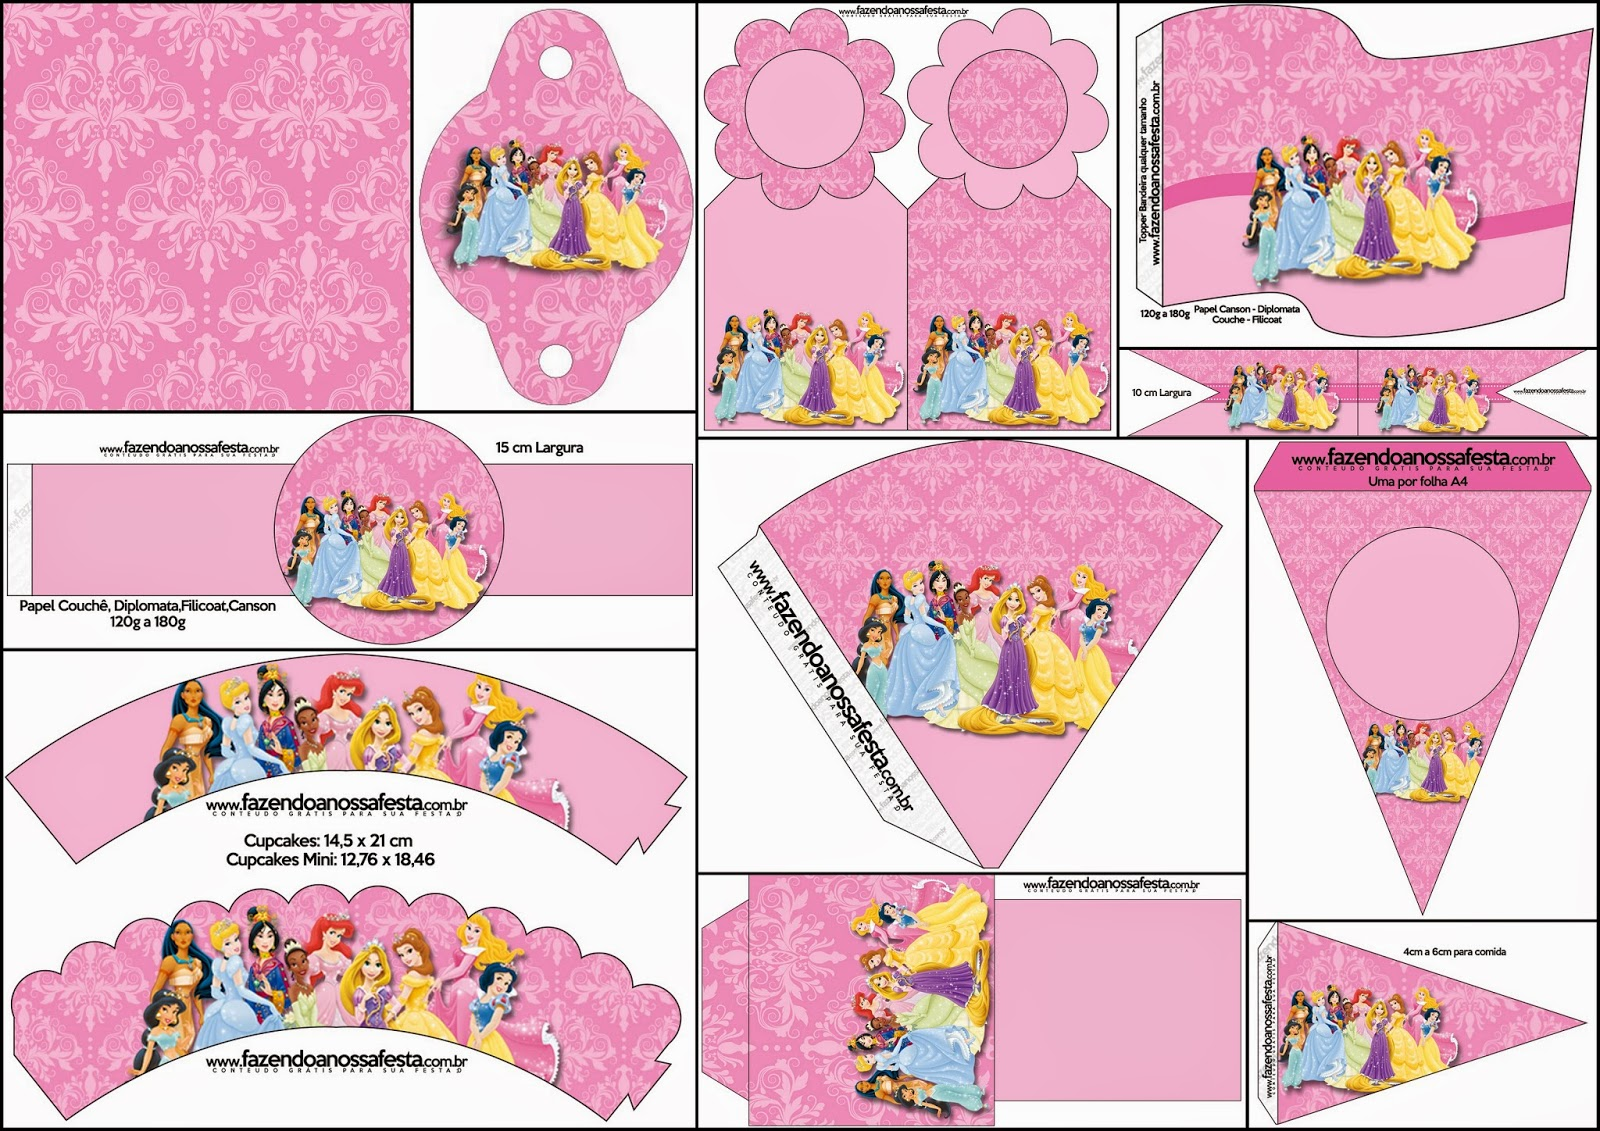 Disney Princess Party: Free Party Printables.